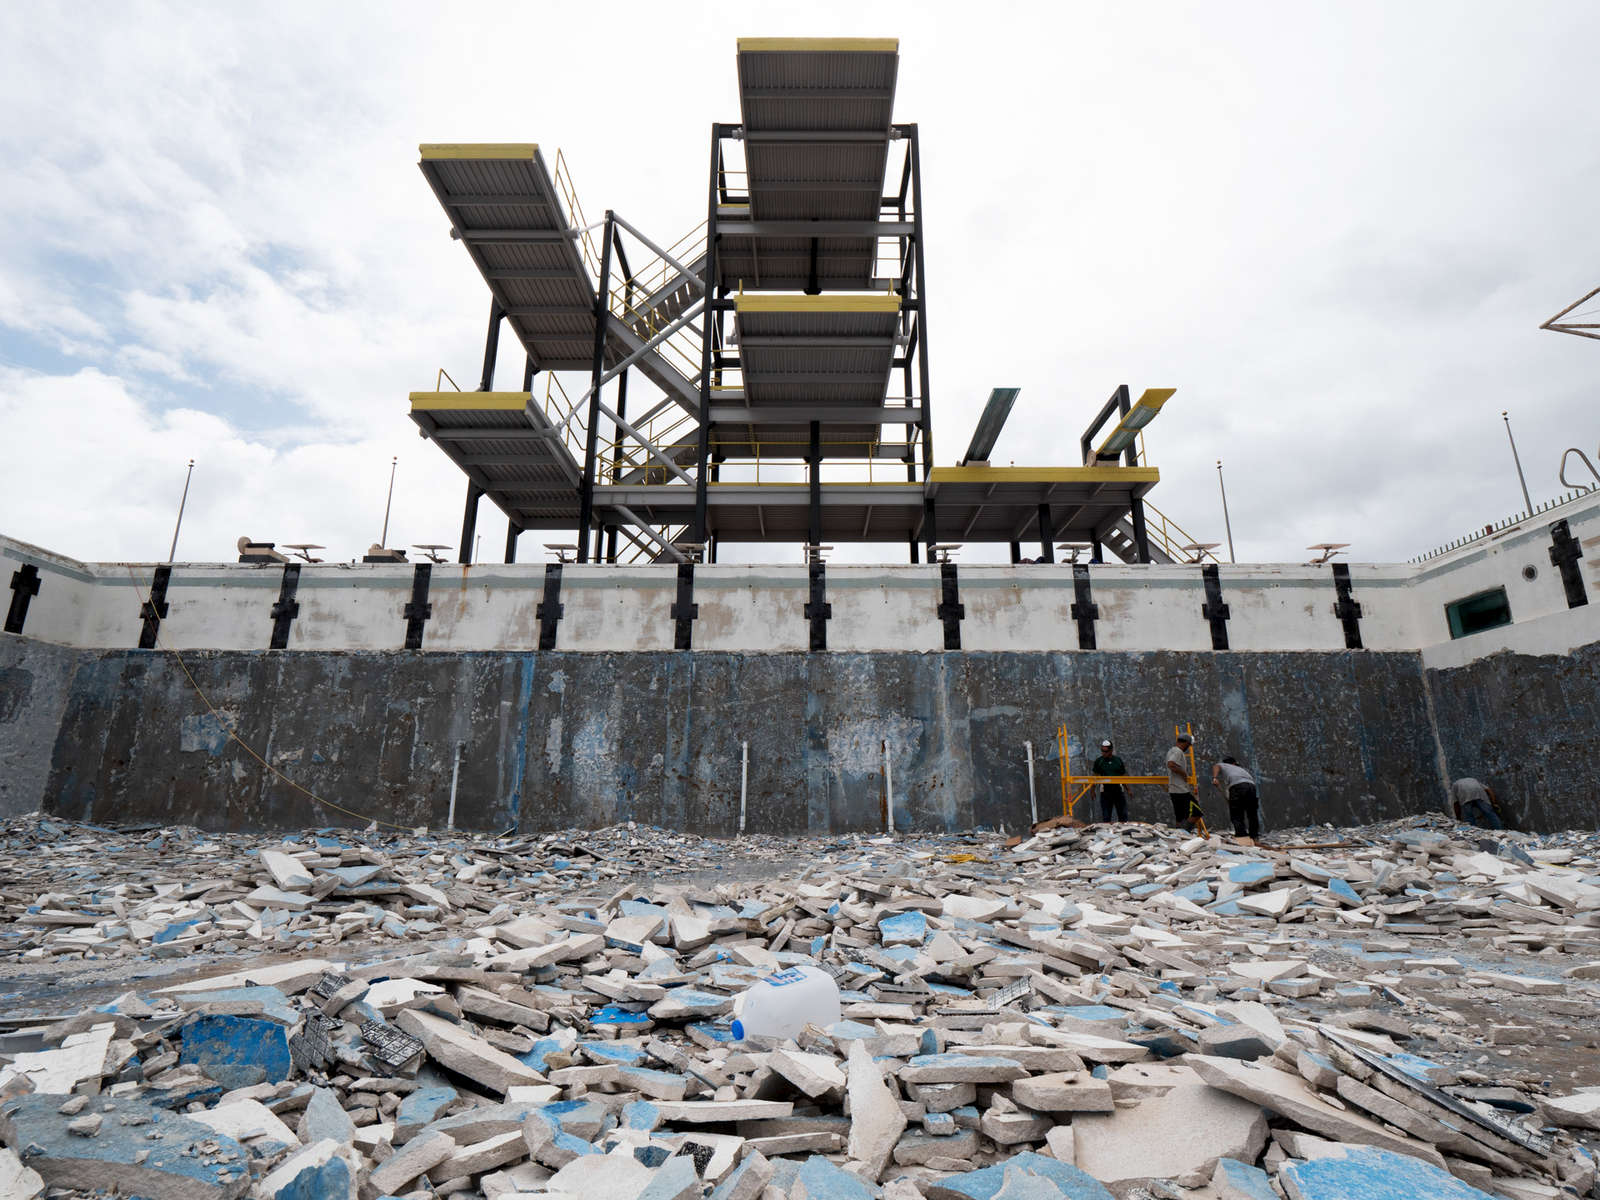 SALINAS, PUERTO RICO - NOVEMBER 14:  The swimming and diving pool are shown in the Aquatic Center at the Albergue Olympic Training Center of  Puerto Rico on November 14, 2018 in Salinas, Puerto Rico. The Aquatic Center was heavily damaged from Hurricane Maria.  The pool remains under construction and is scheduled to be rebuilt.  The effort continues in Puerto Rico to remain and rebuild more than one year after the Hurricane Maria hit and devastated the island on September 20, 2017. The official number of deaths from the disaster is 2,975.